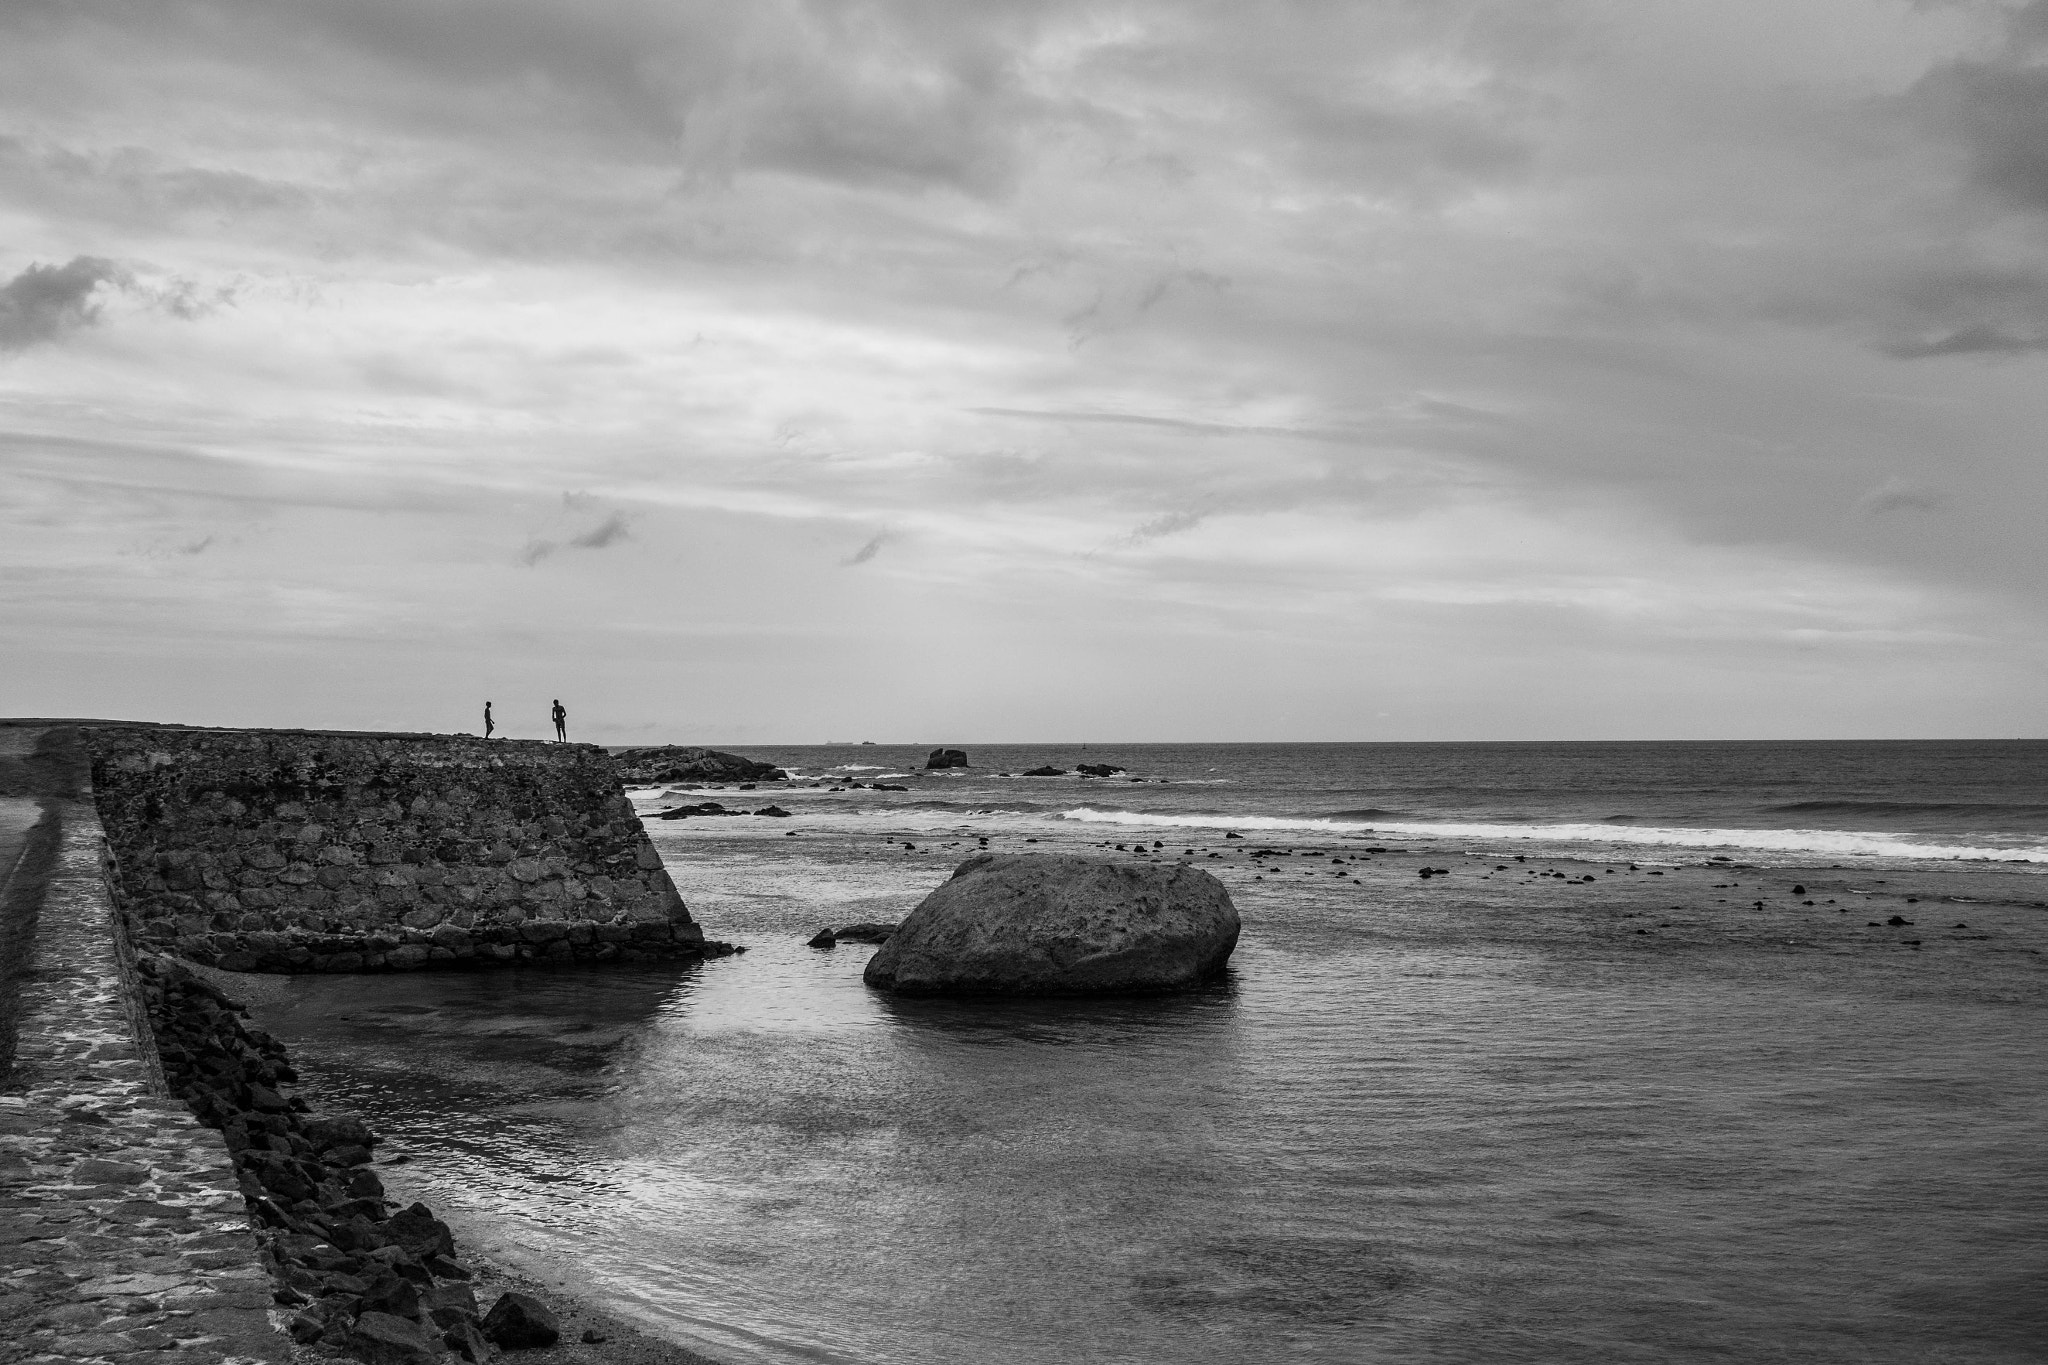 Photograph Sea by the Fort by Heshan Jayakody on 500px